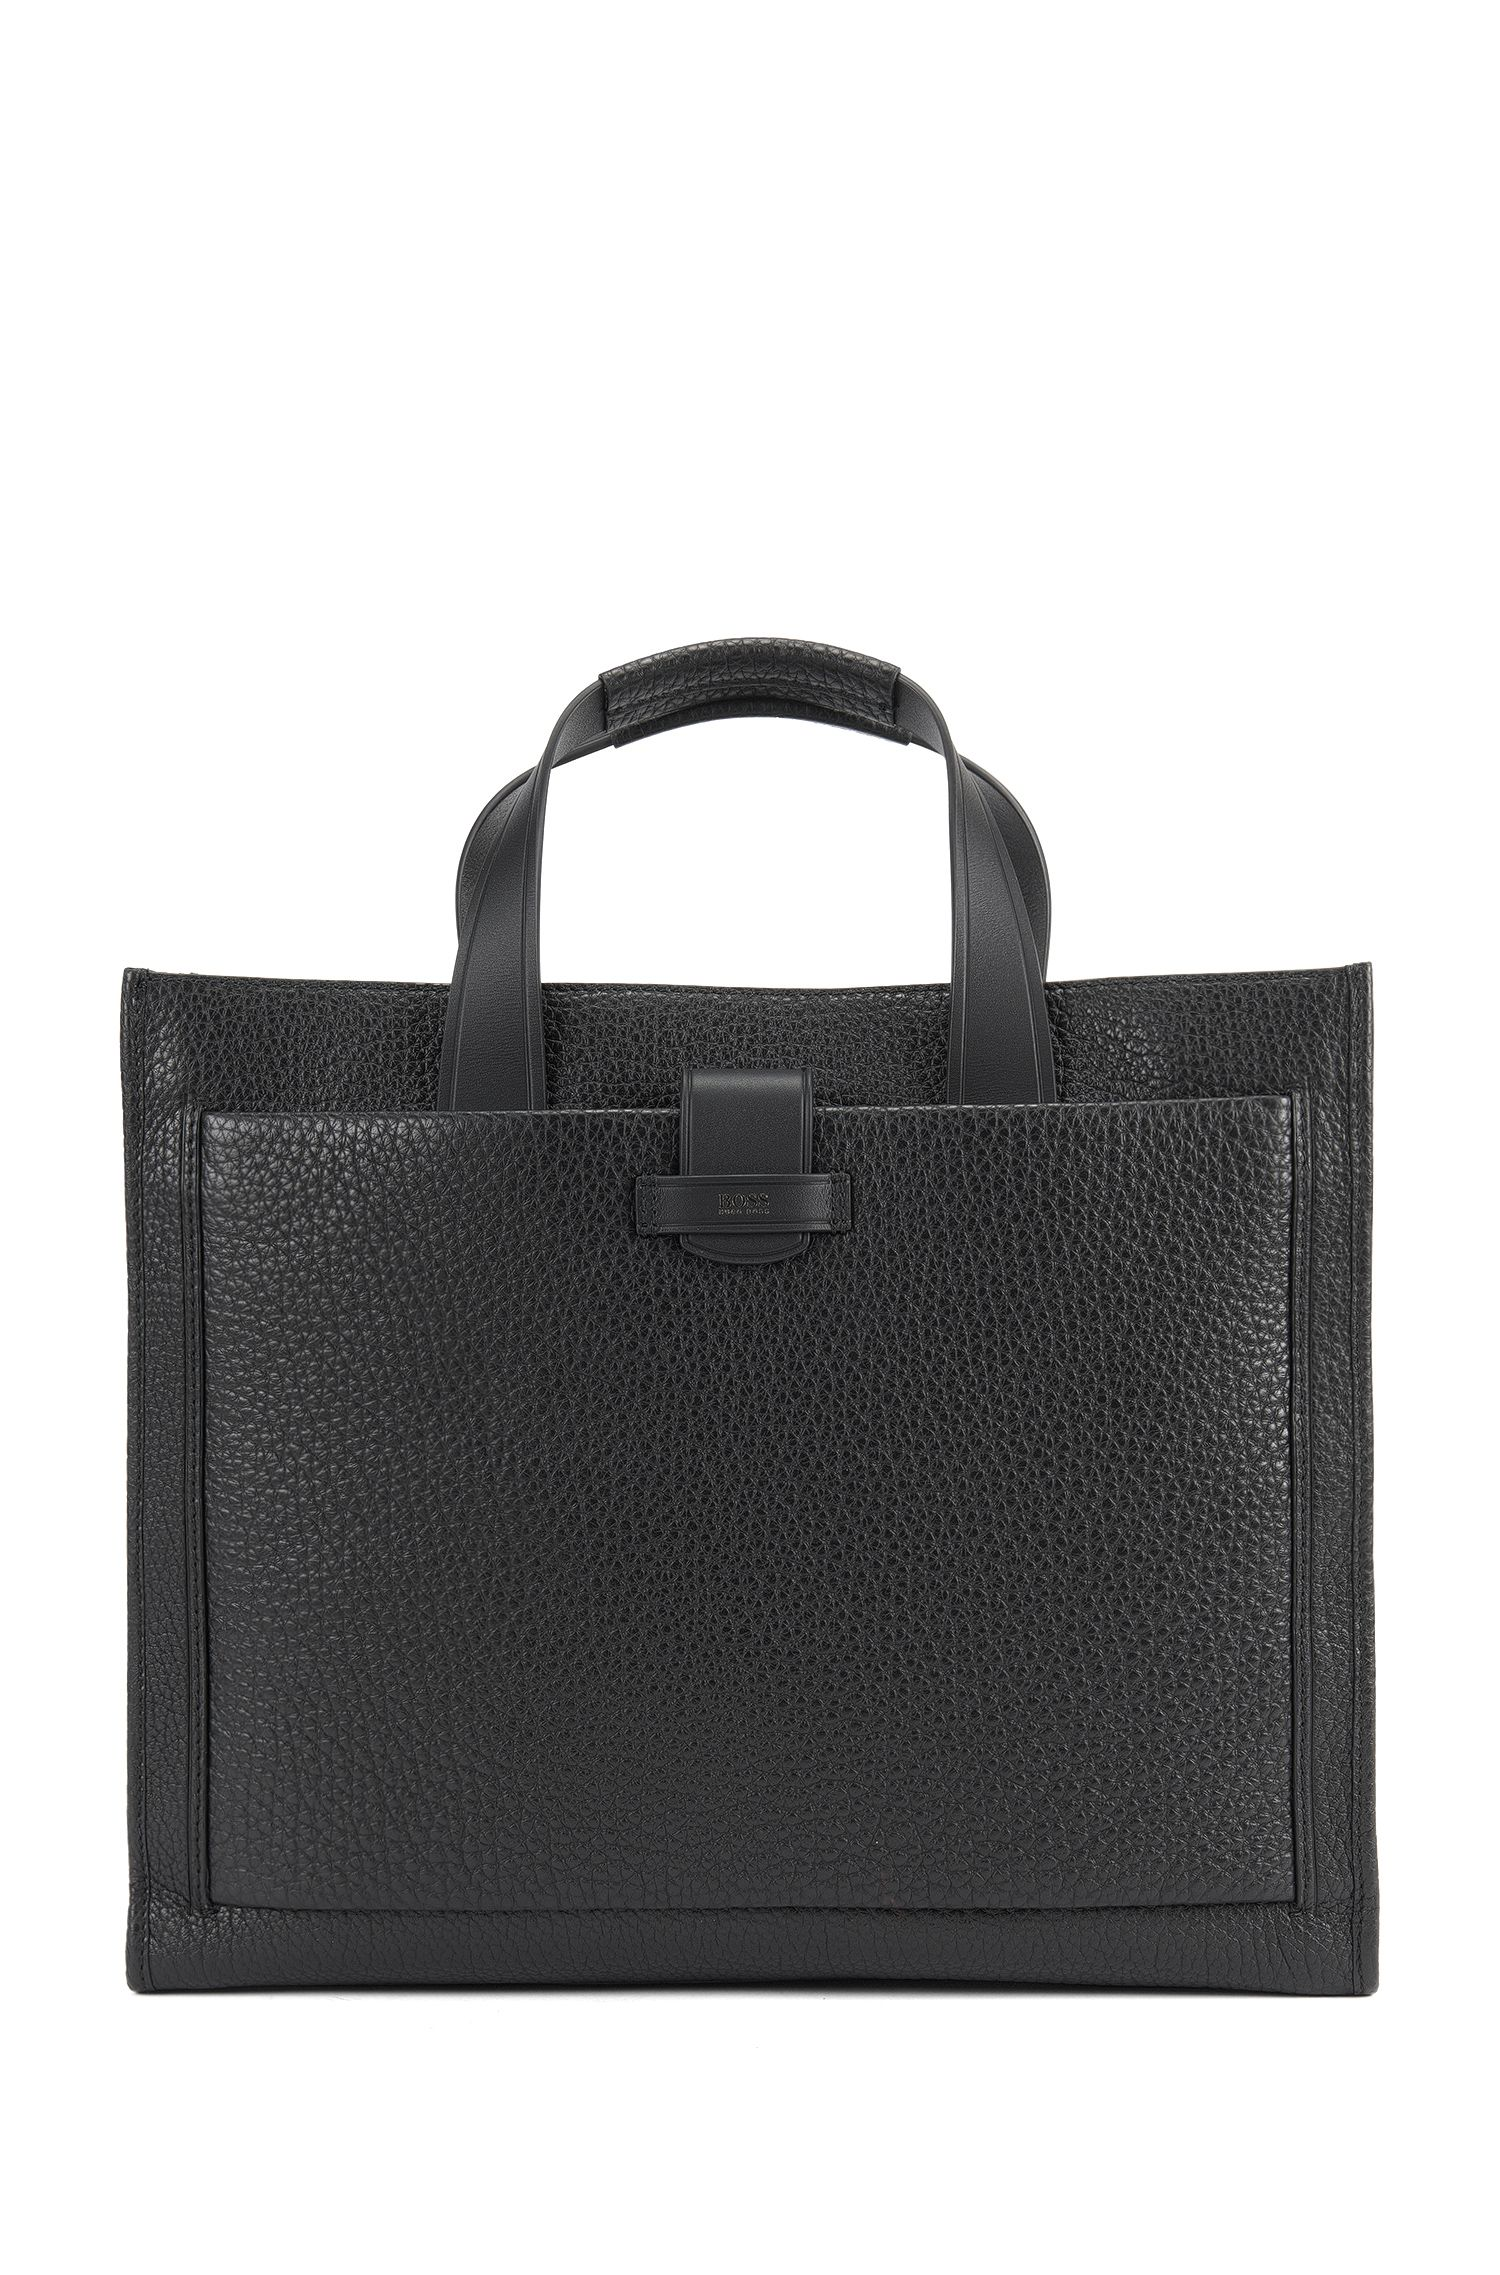 Top-Grain Leather Tote | Varenne Tote